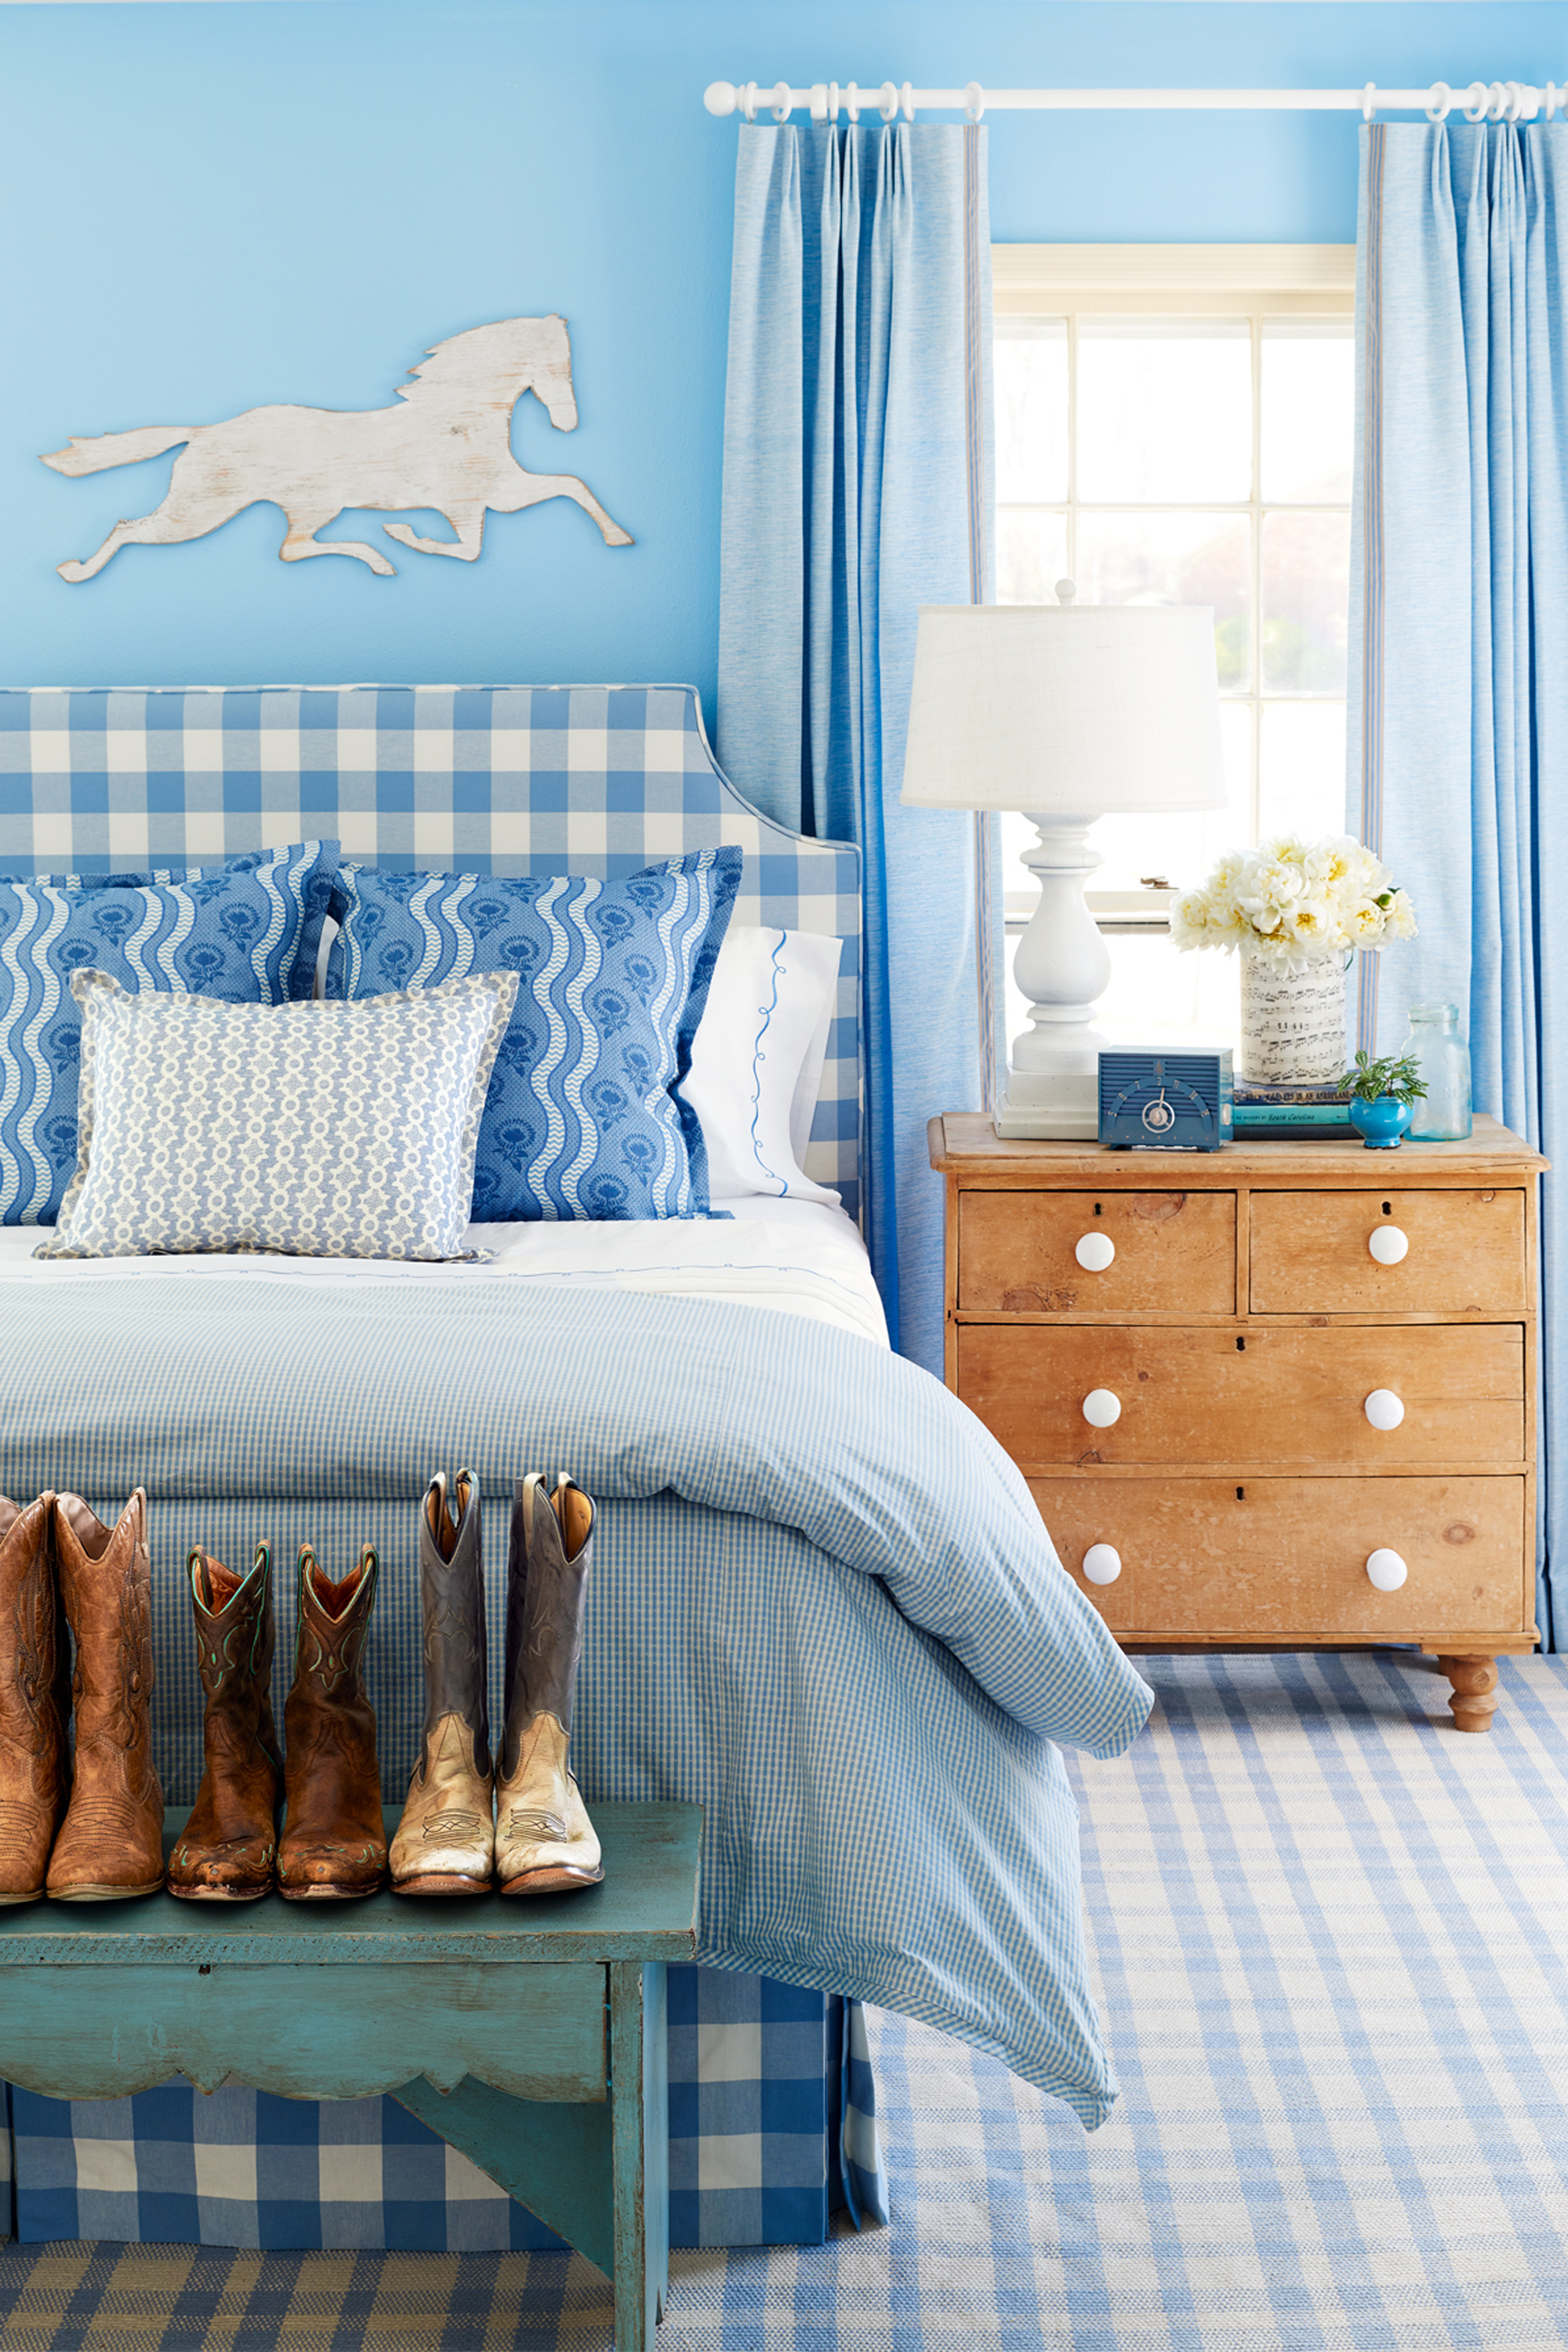 Best Blue Color For Bedroom 25 best blue rooms - decorating ideas for blue walls and home decor